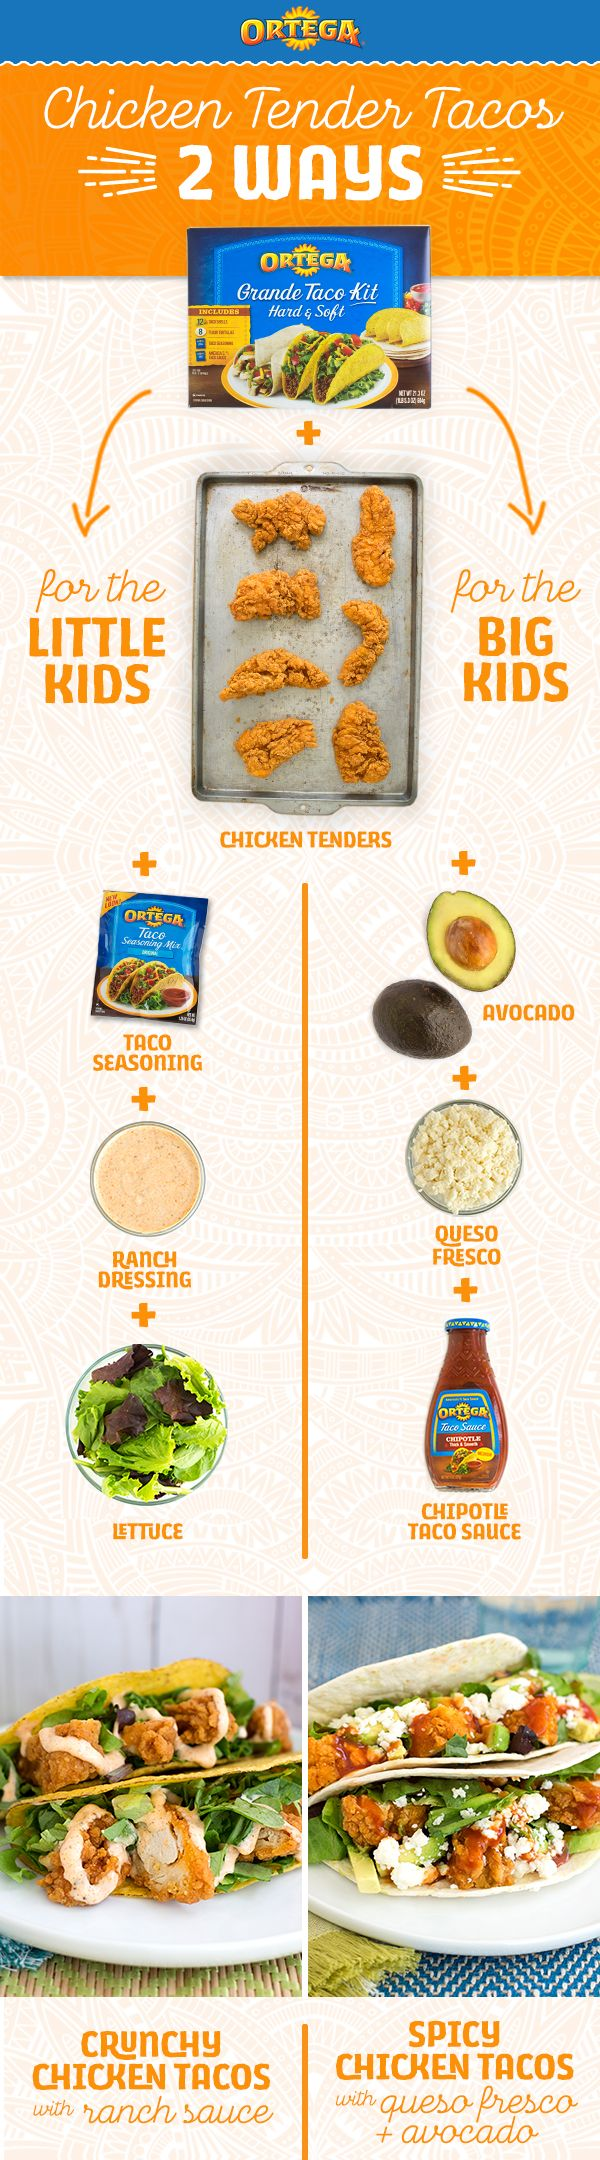 We made dressing up tacos easy, so your weeknight dinners will be a breeze. Got big and little kids with different tastes? Try mixing Ortega Taco Seasoning and ranch dressing for flavor that won't bring the heat—or use Ortega Chipotle Taco Sauce for a little more bite.